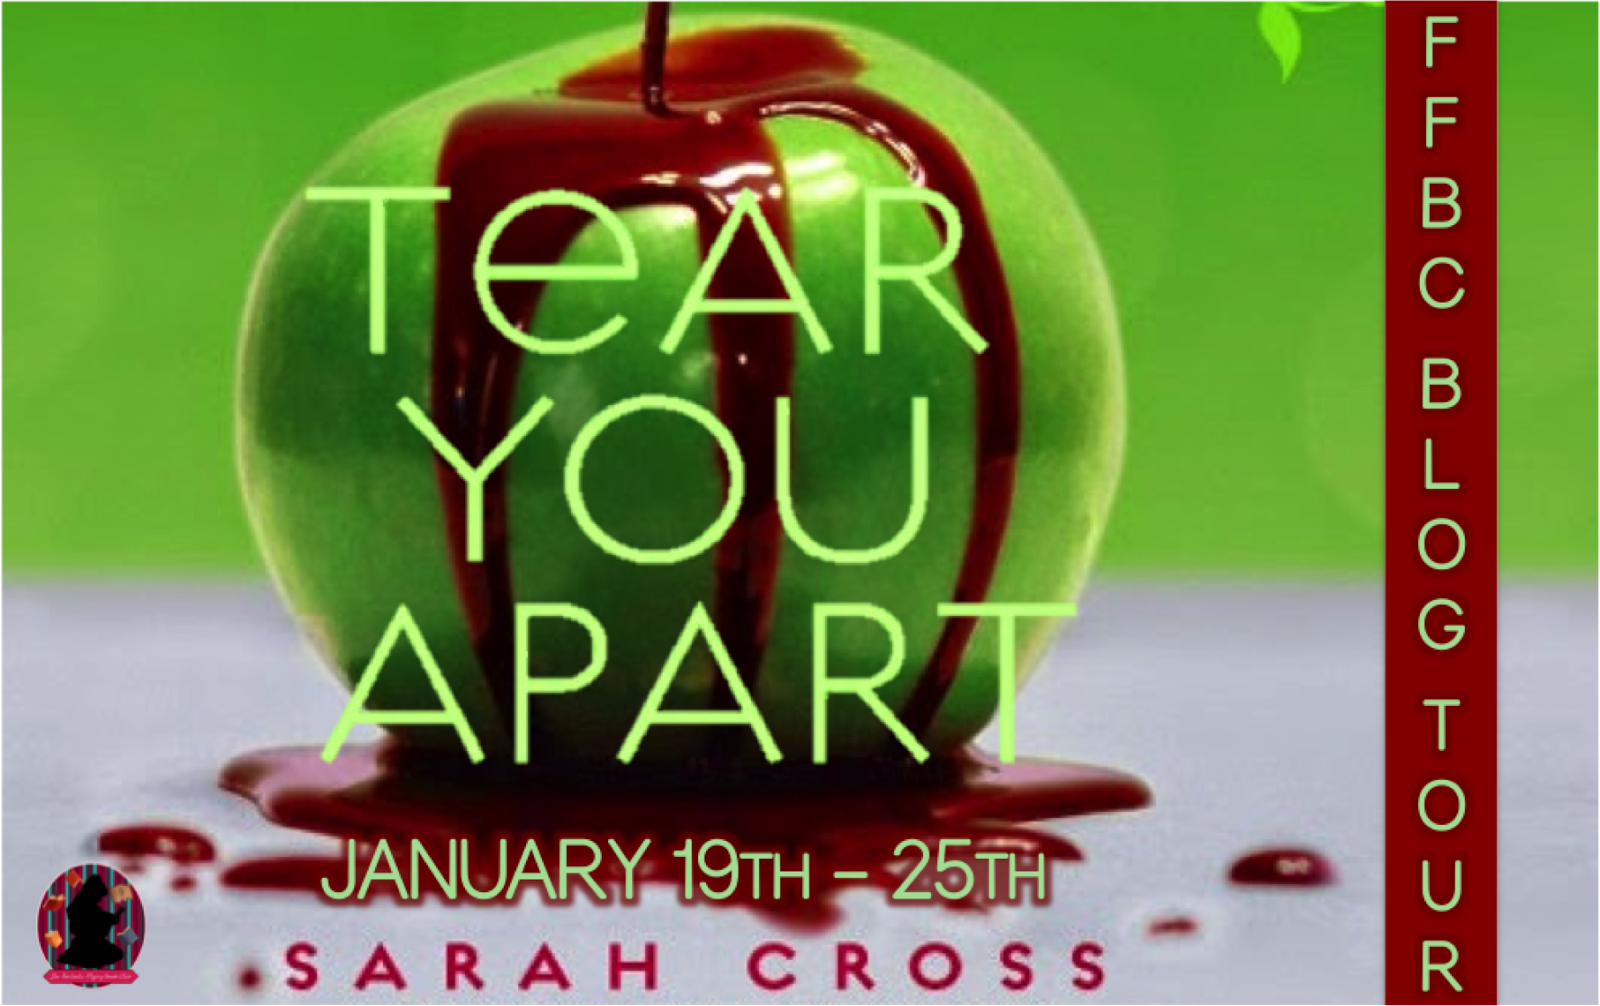 http://theunofficialaddictionbookfanclub.blogspot.com/2014/11/ffbc-blog-tour-tear-you-apart-beau.html